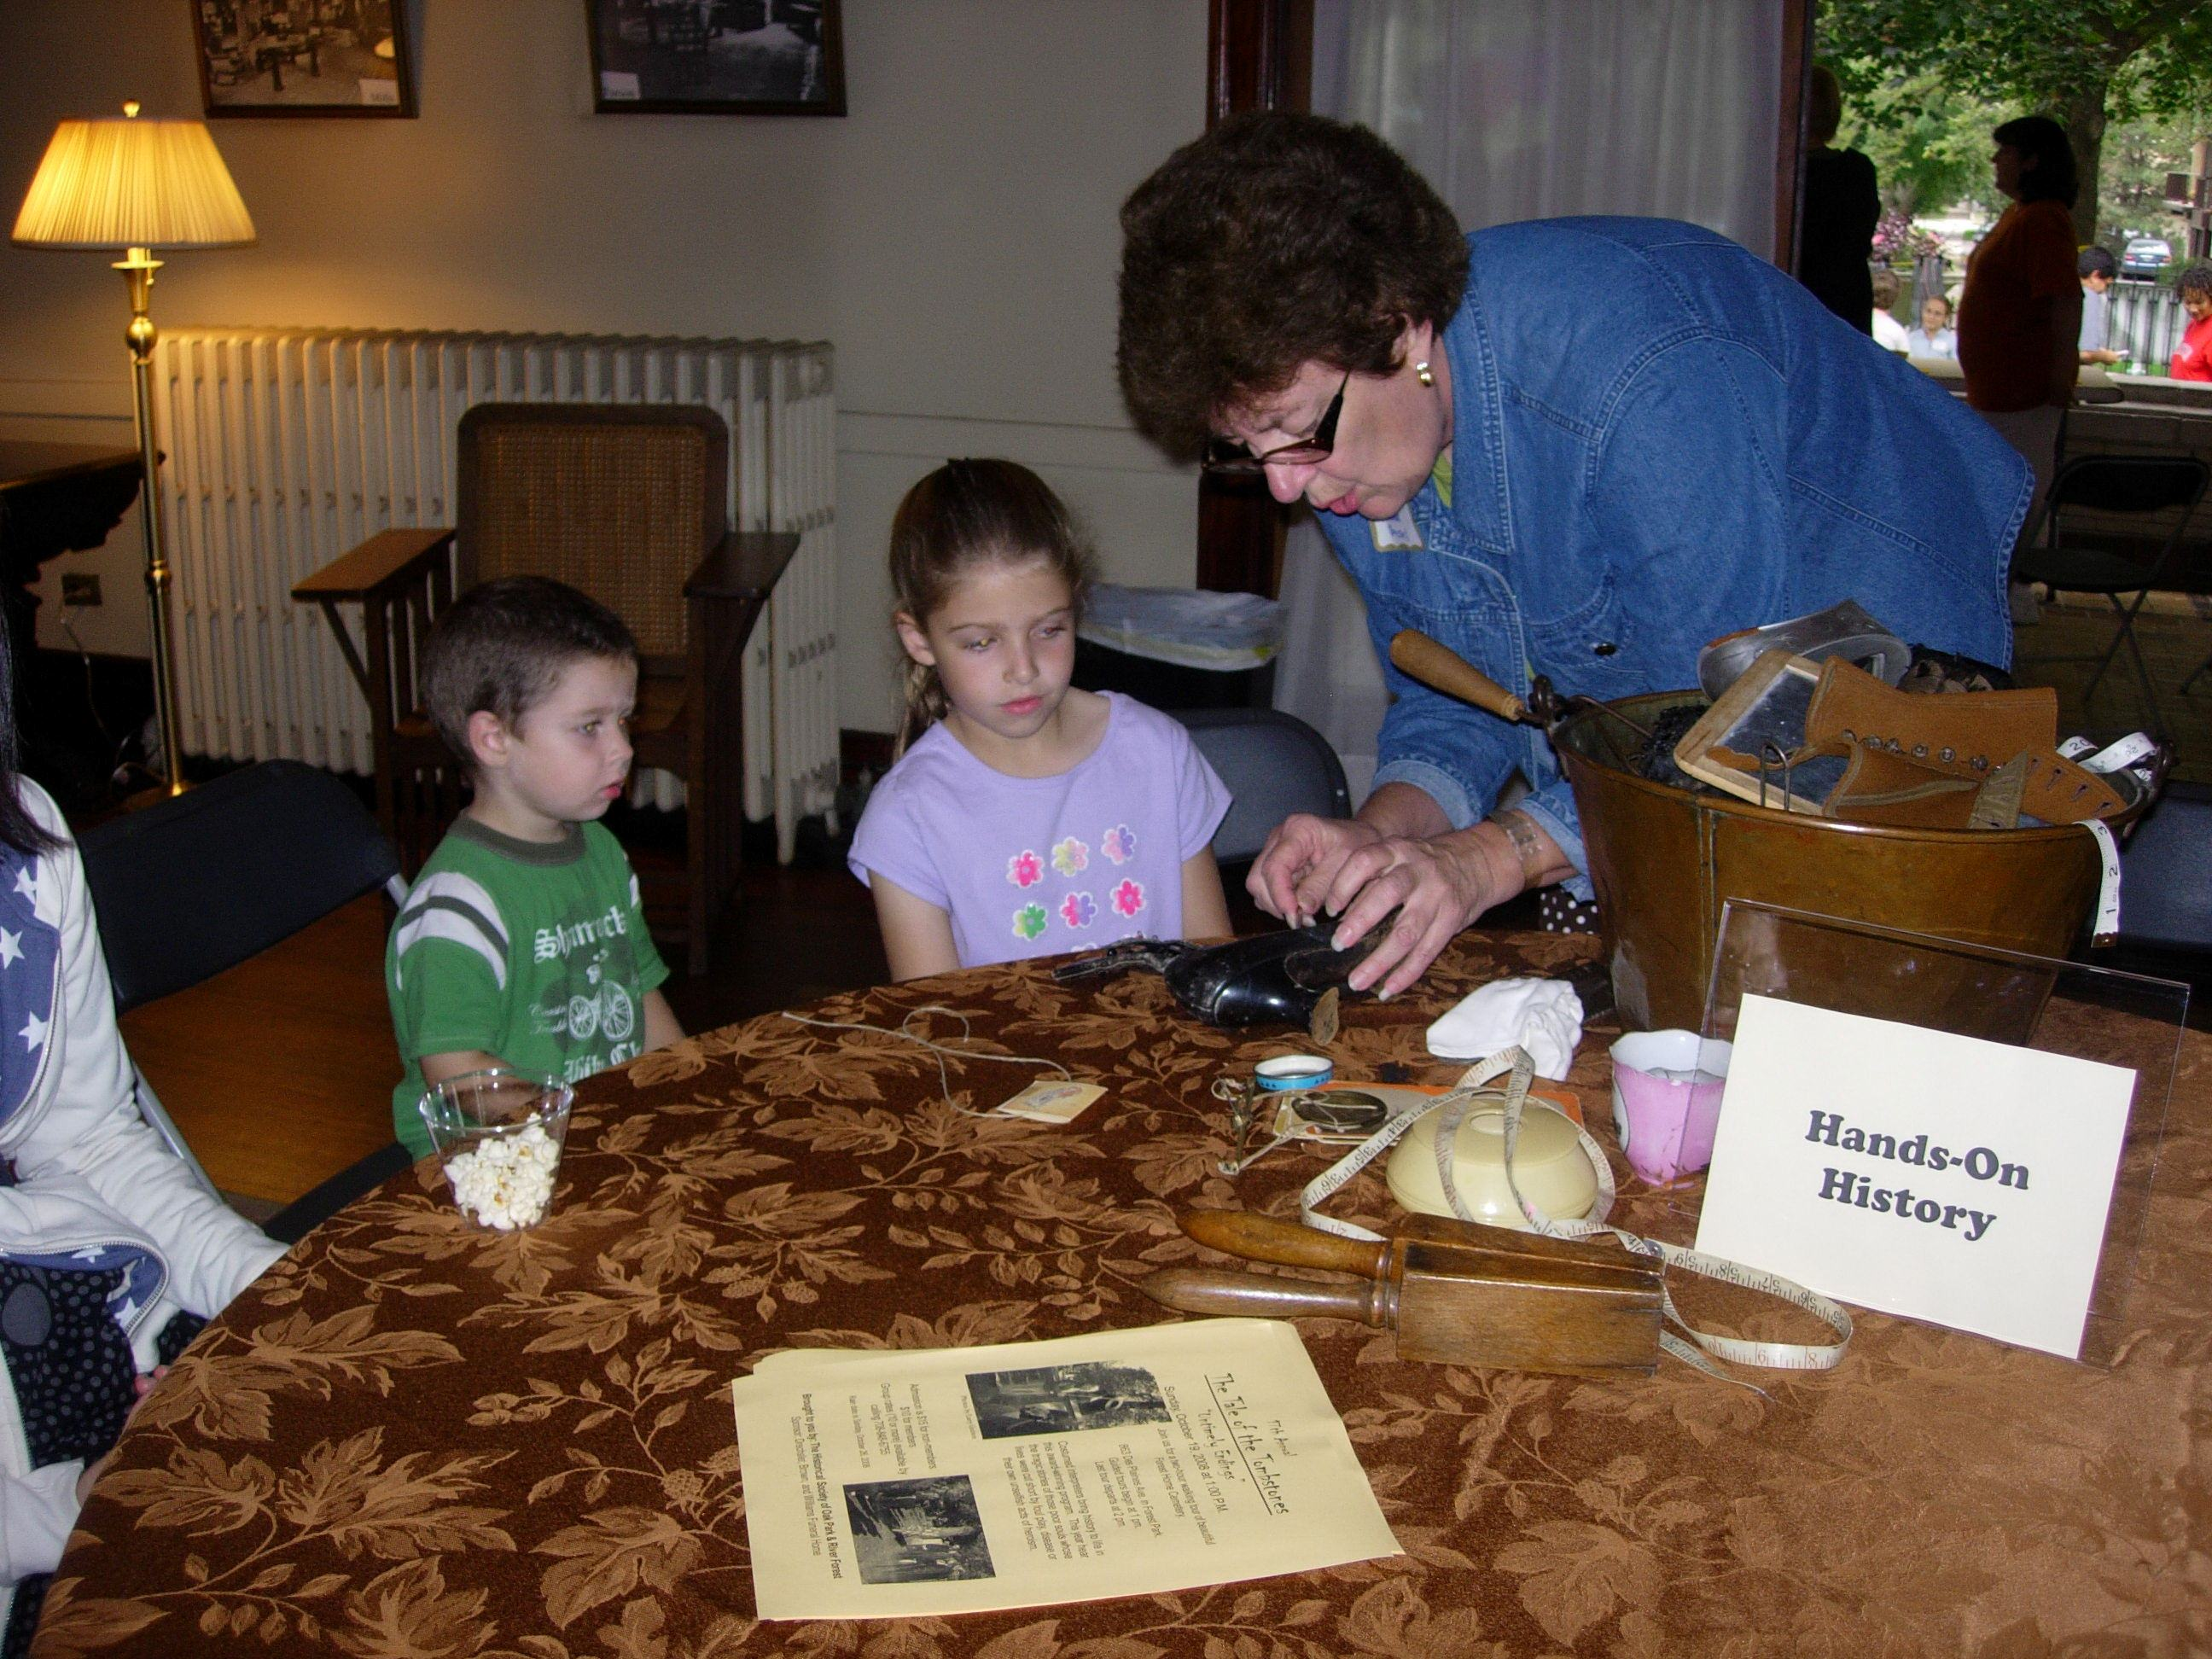 Hands-On History at the Pleasant Home Children's Day. (Photo credit: Pleasant Home Foundation.)